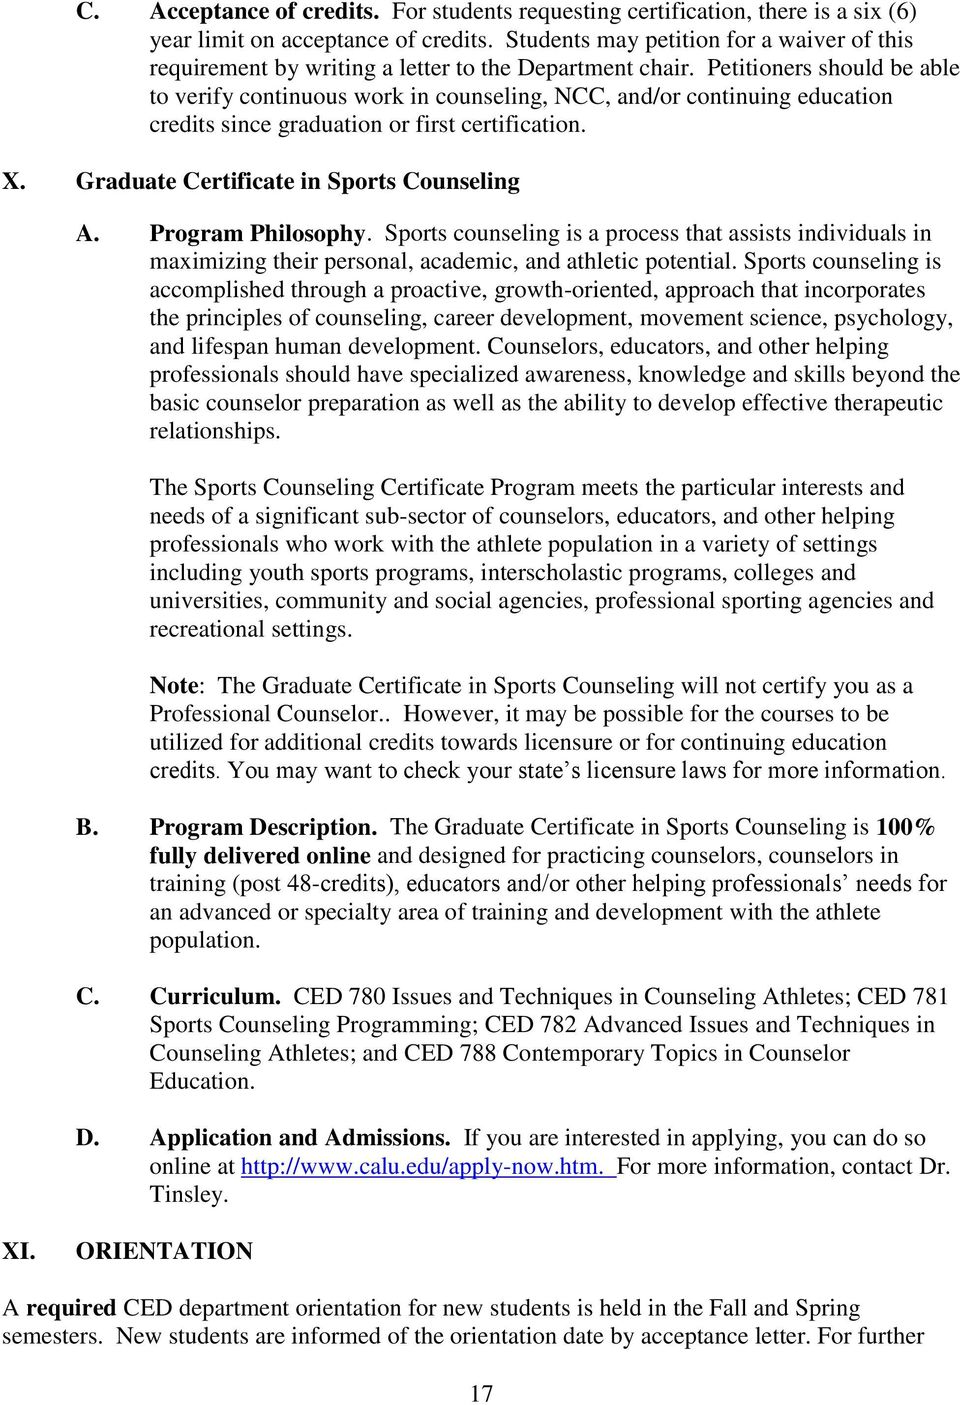 Petitioners should be able to verify continuous work in counseling, NCC, and/or continuing education credits since graduation or first certification. X. Graduate Certificate in Sports Counseling A.